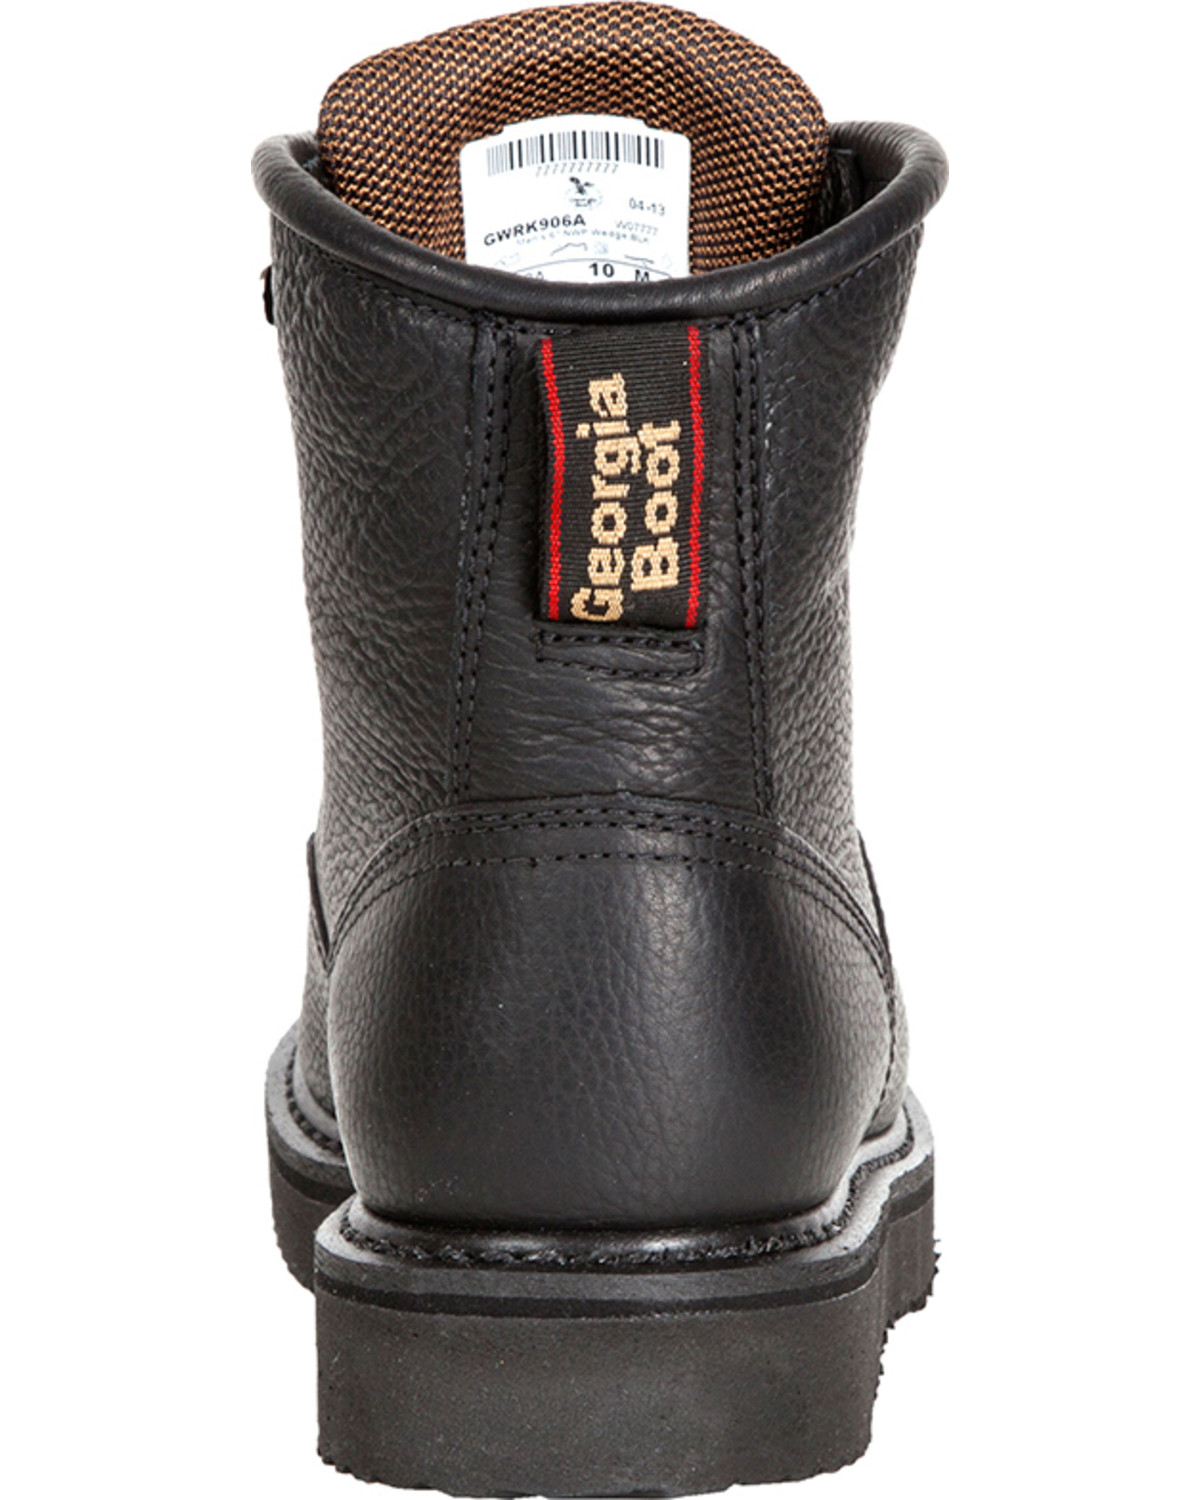 Georgia men 39 s 6 lace up wedge work boots boot barn for International decor outlet darien georgia